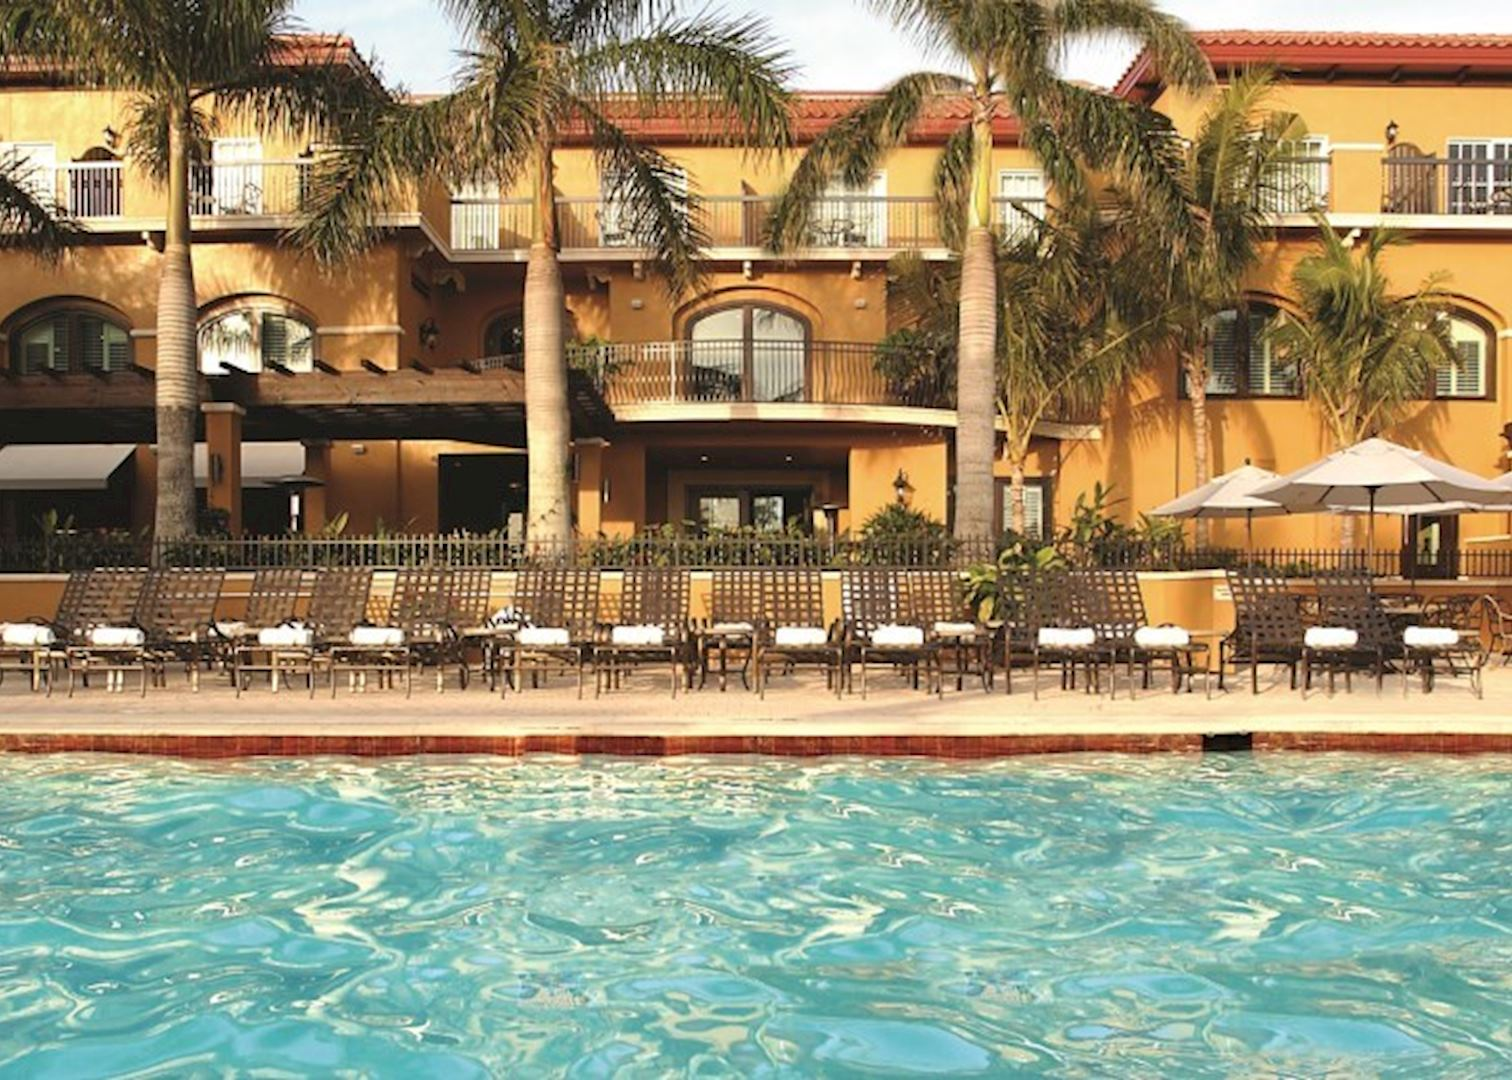 Bellasera hotel hotels in naples audley travel for Hotels naples